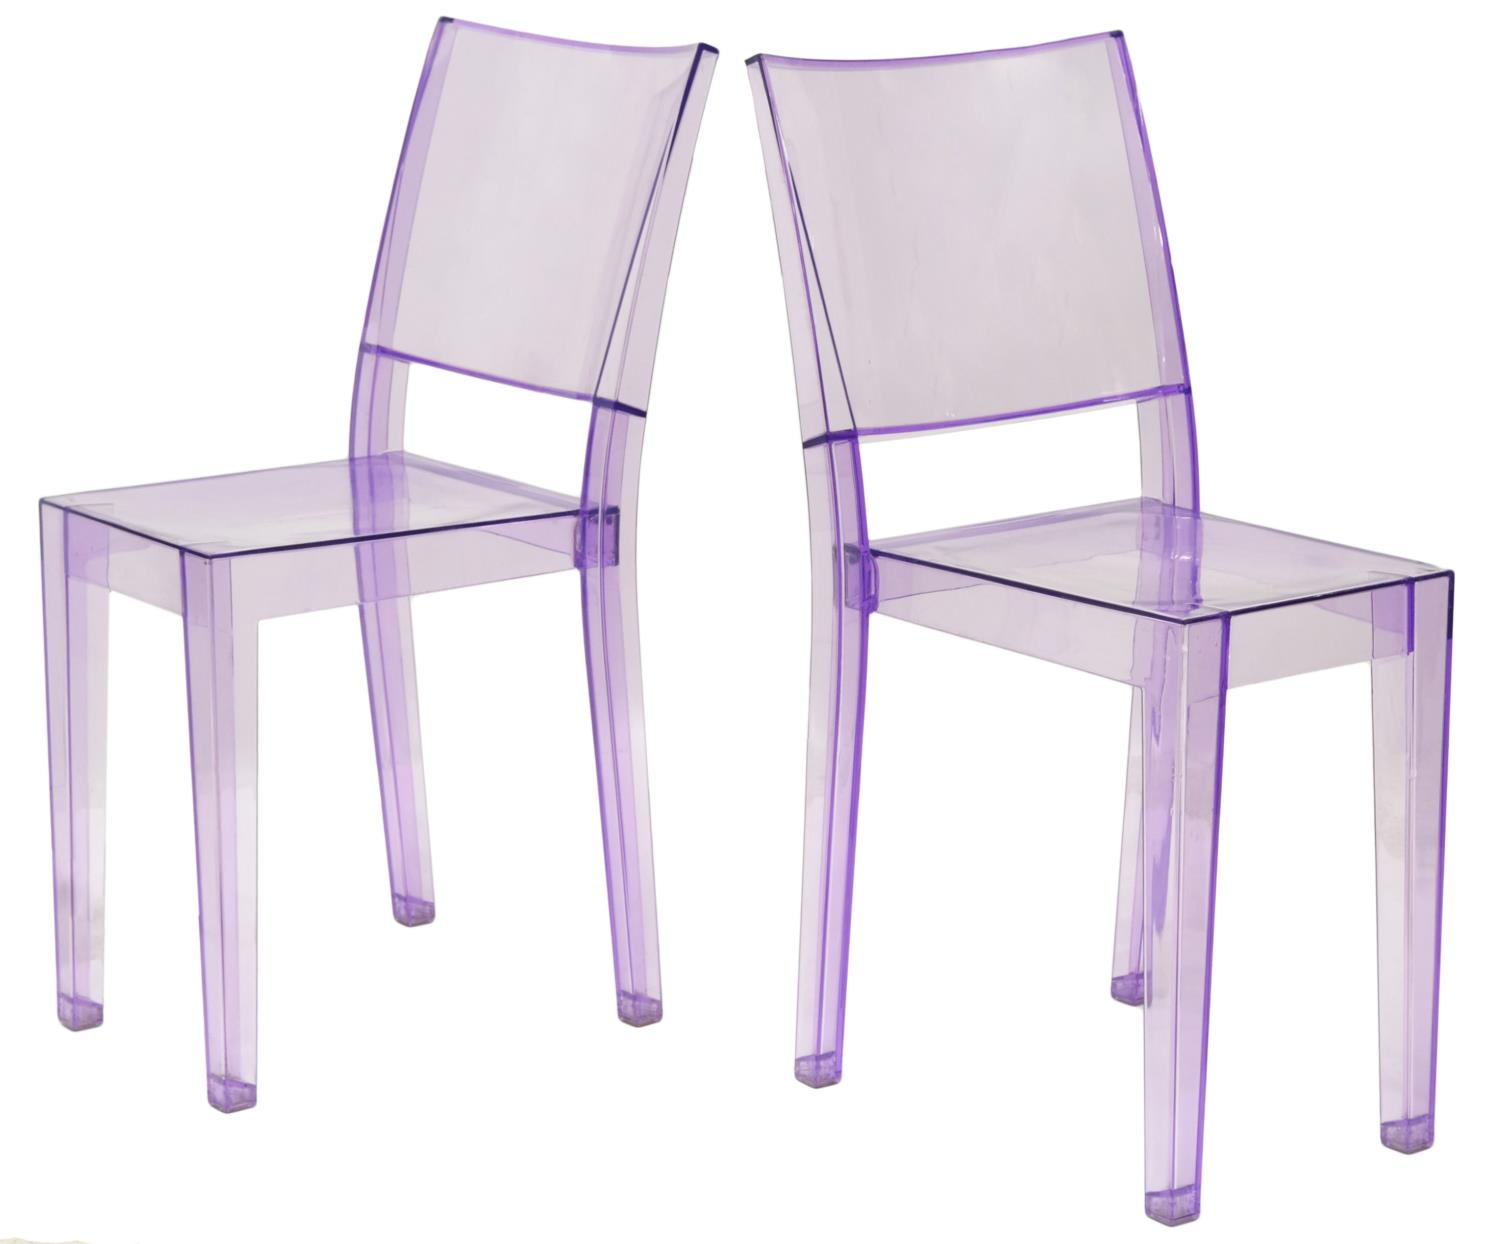 2 la marie chairs philippe starck for kartell italian for Chaise la marie starck